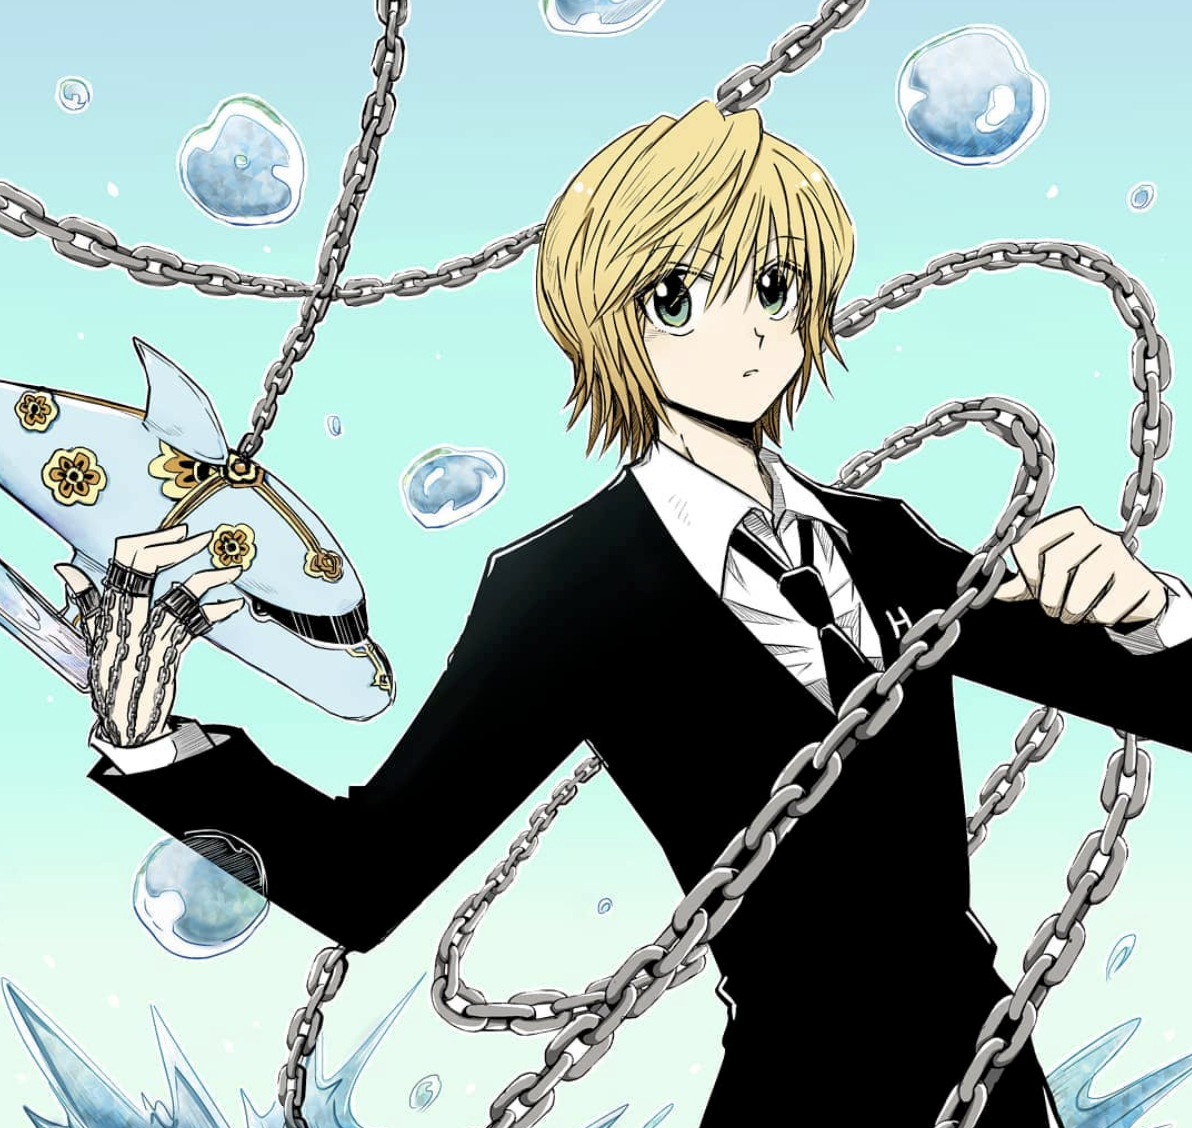 Pin by Hanesawa on Kurapika Hunter x hunter, Black